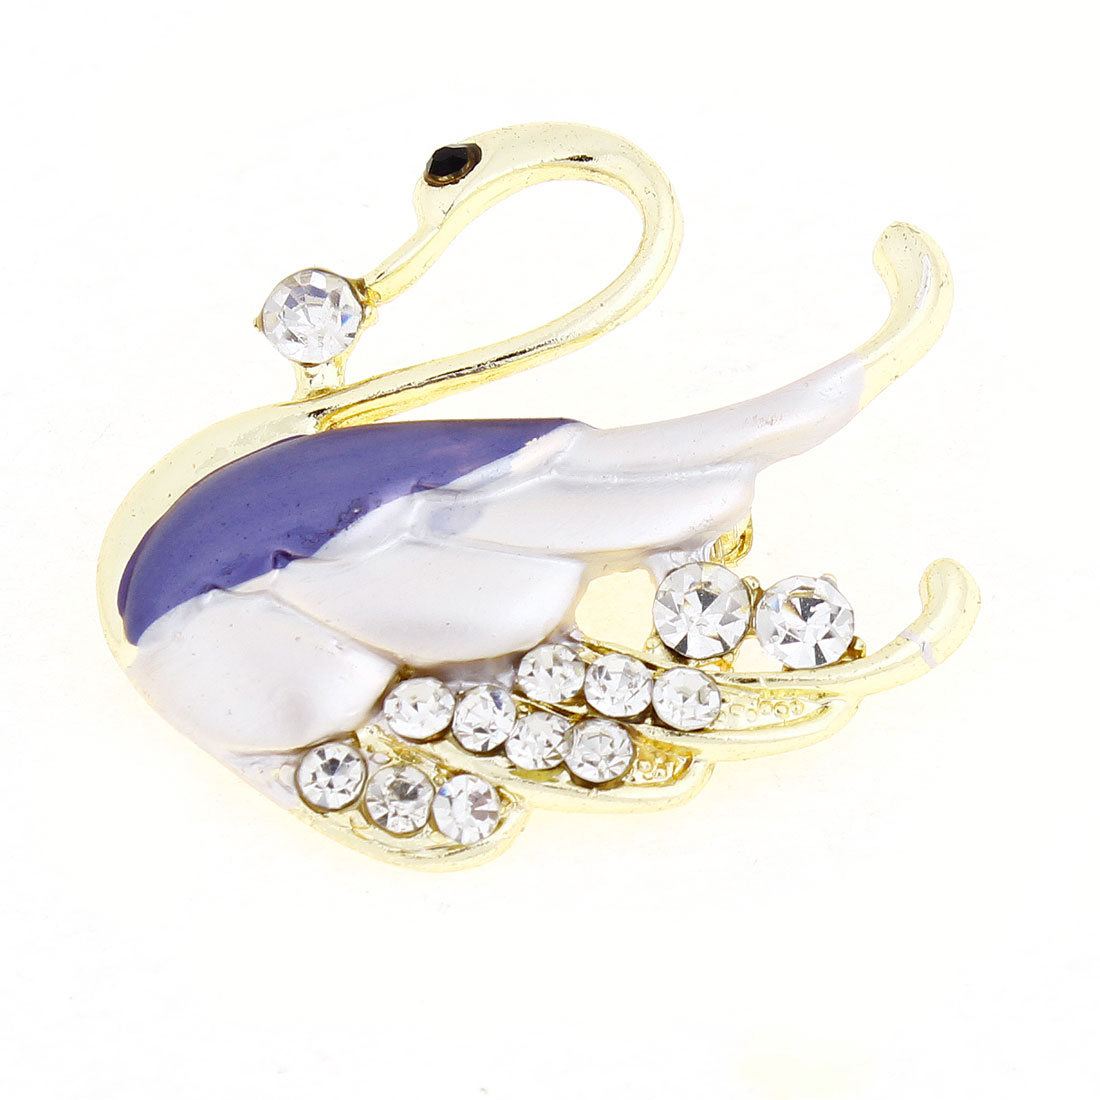 Lady Shiny Rhinestone Wing Swan Detail Safety Pin Brooch Breastpine Purple